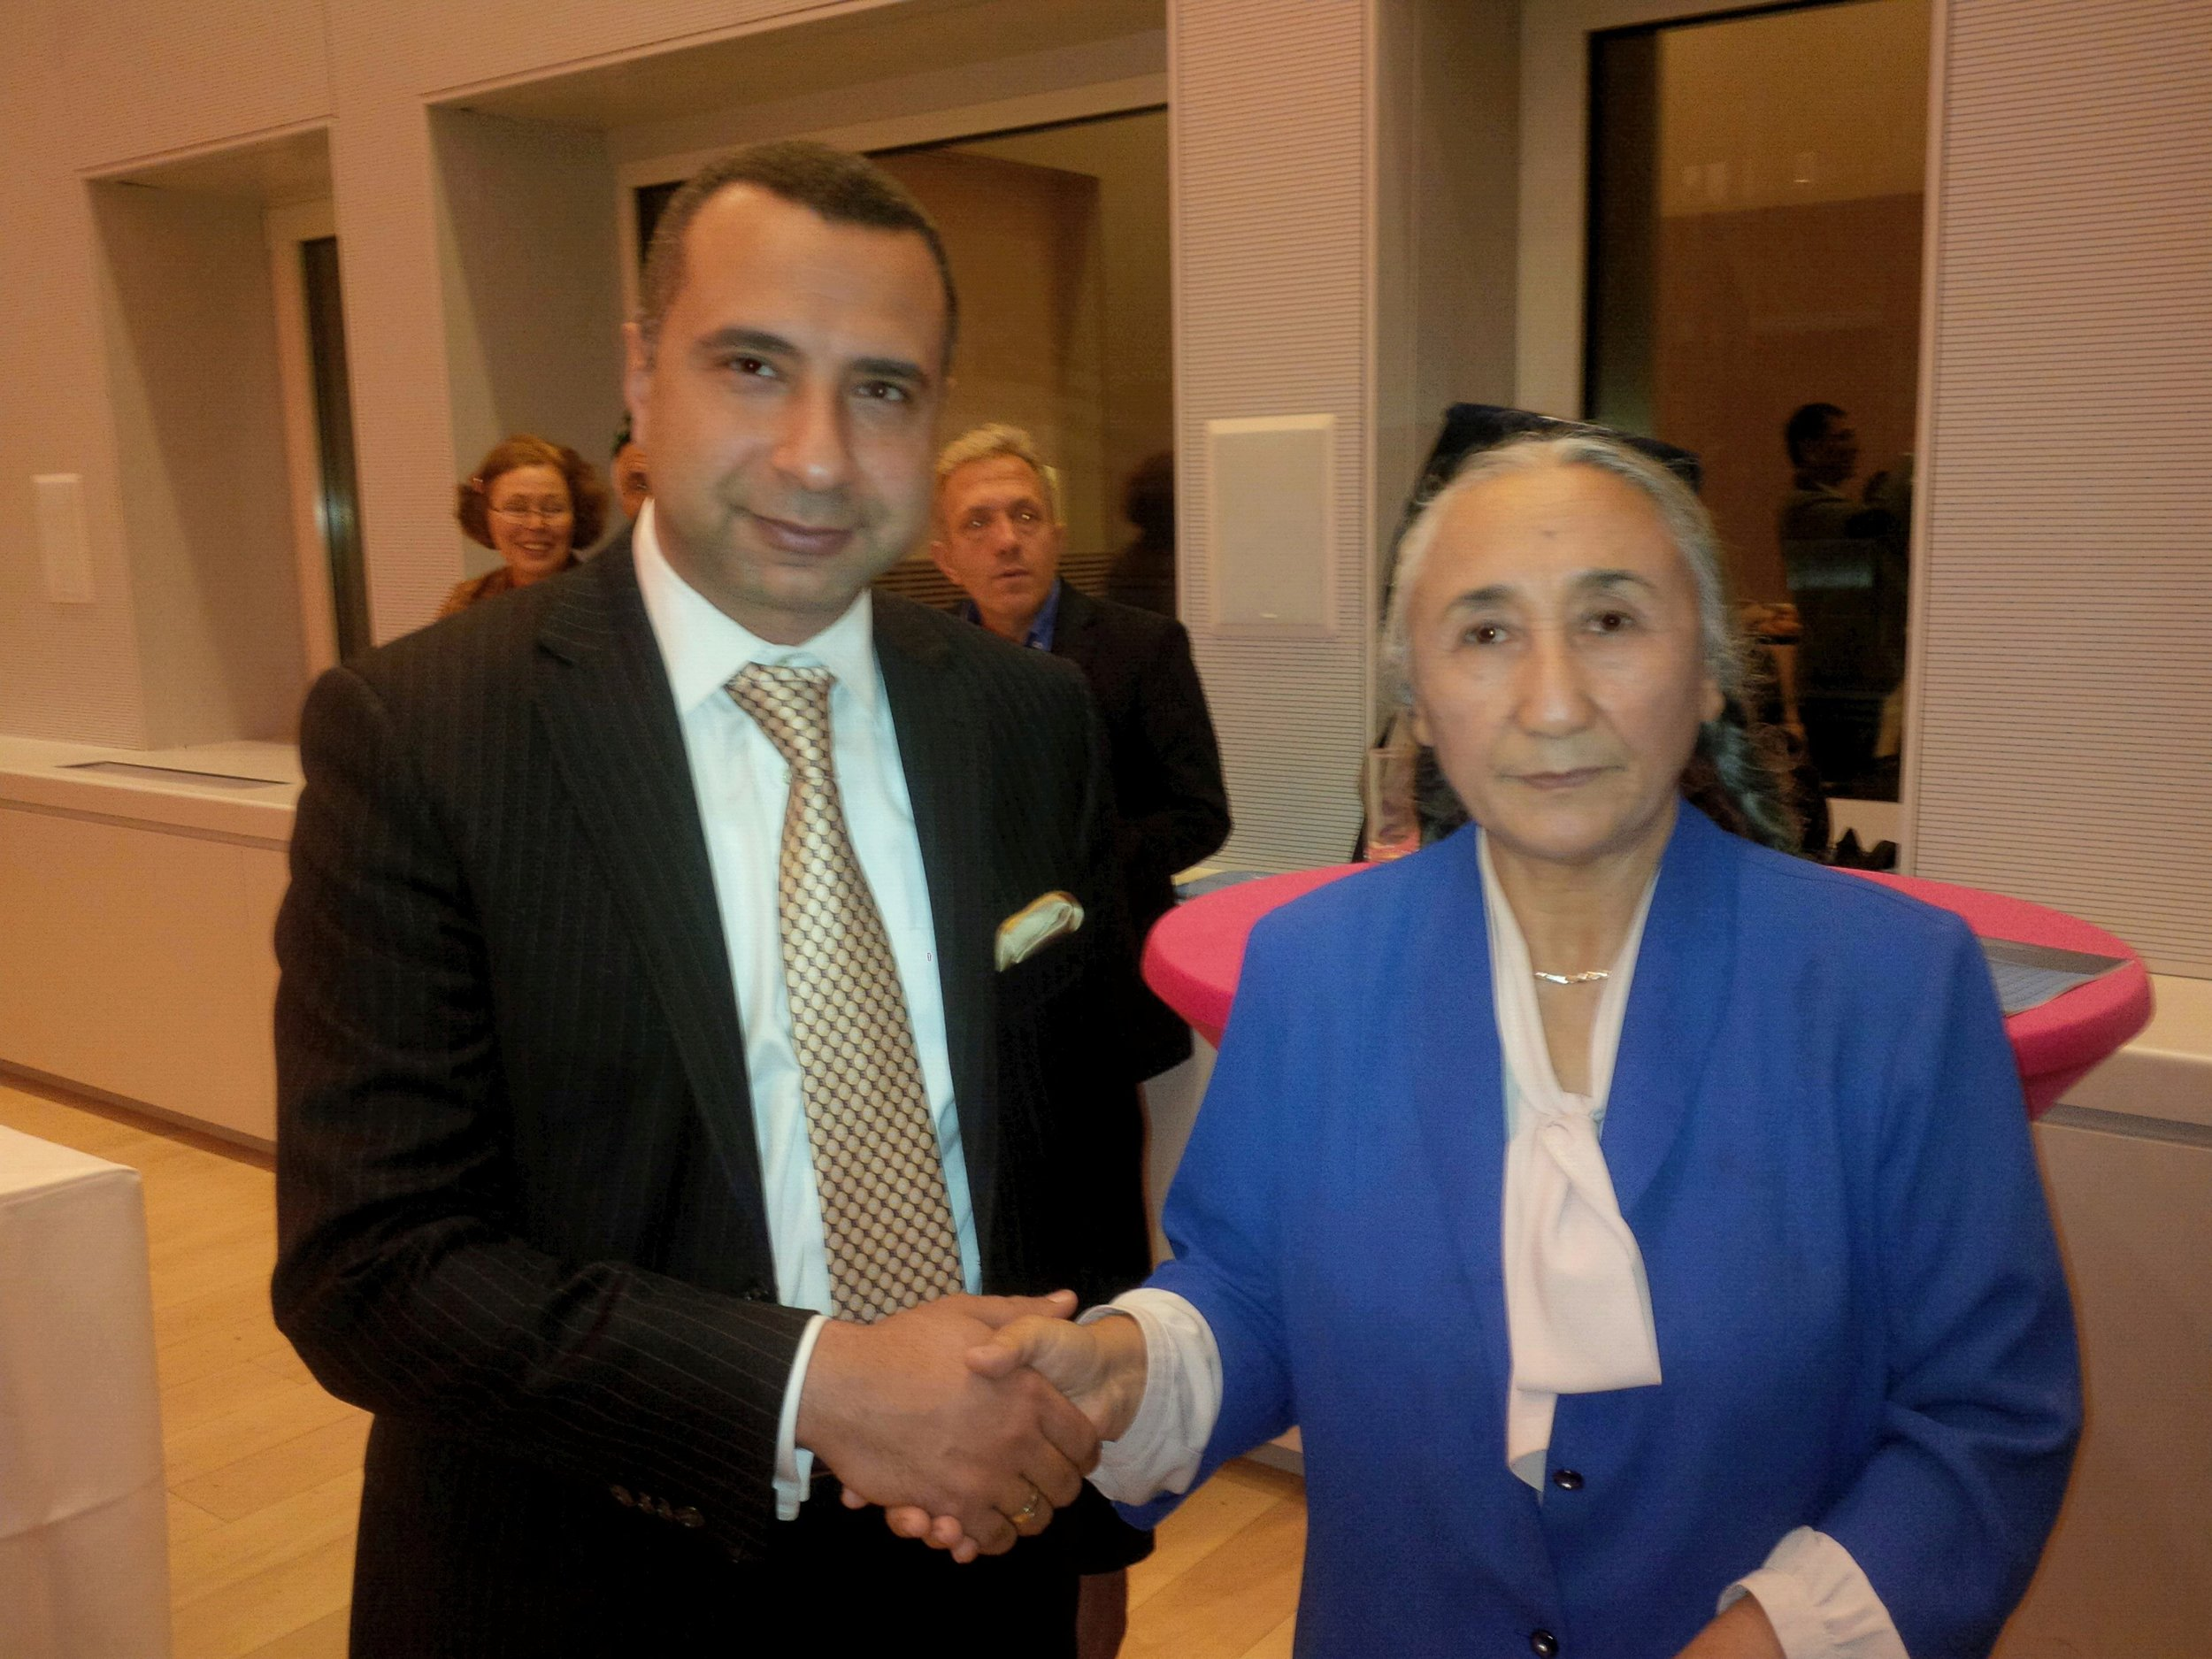 Uyghur Conference Brussels